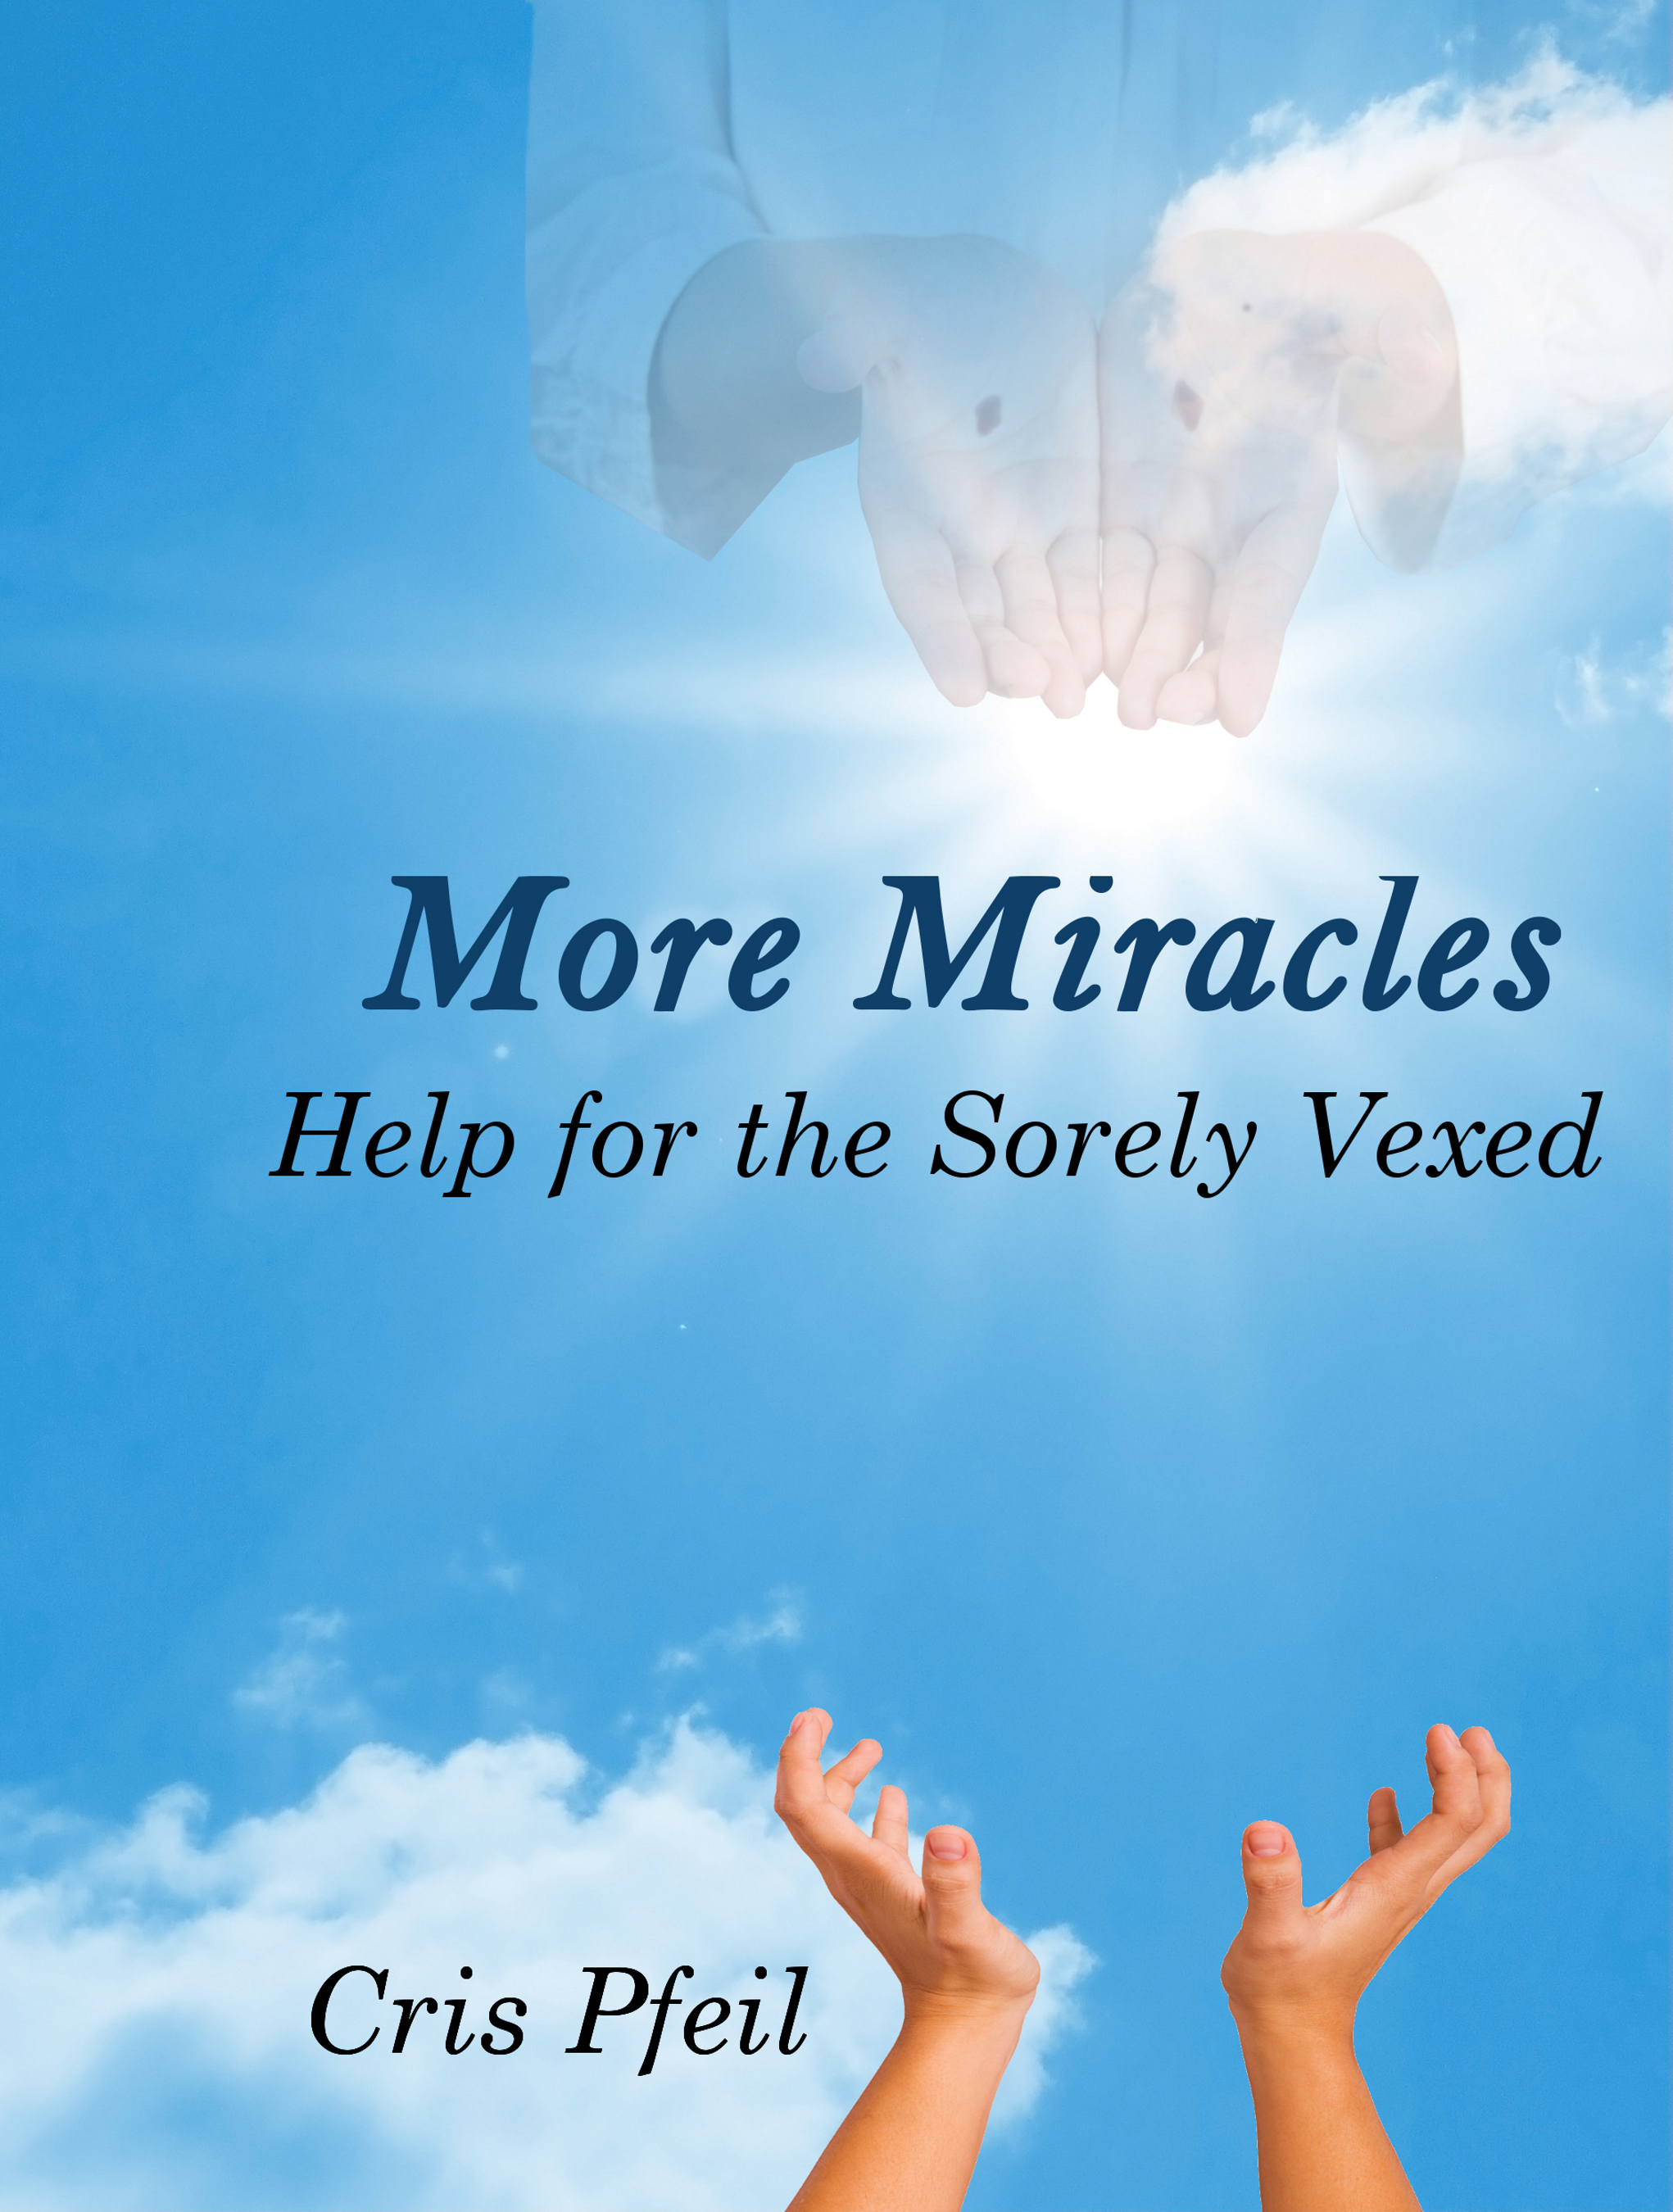 More Miracles- Coming this Fall!